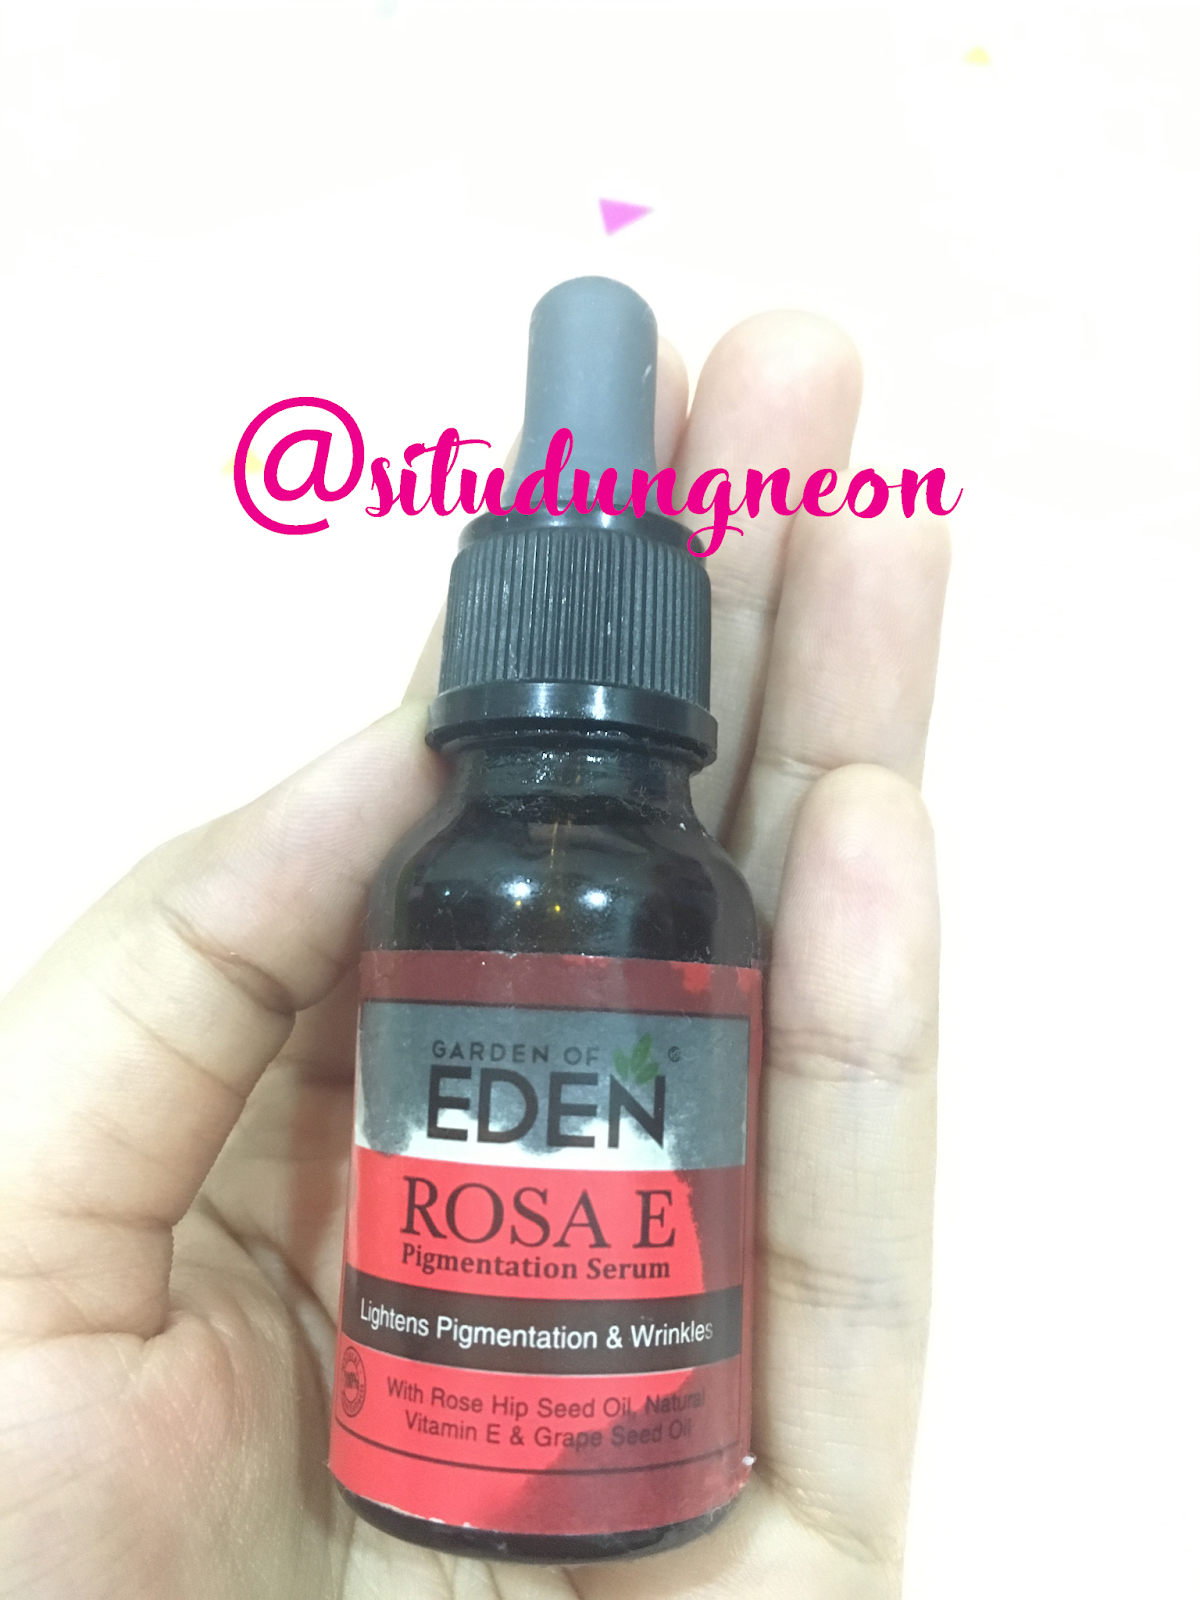 Garden Of Eden Rosa E Pigmentation Serum Lightens Wrinkles With Rose Hip Seed Oil Natural Vitamin G